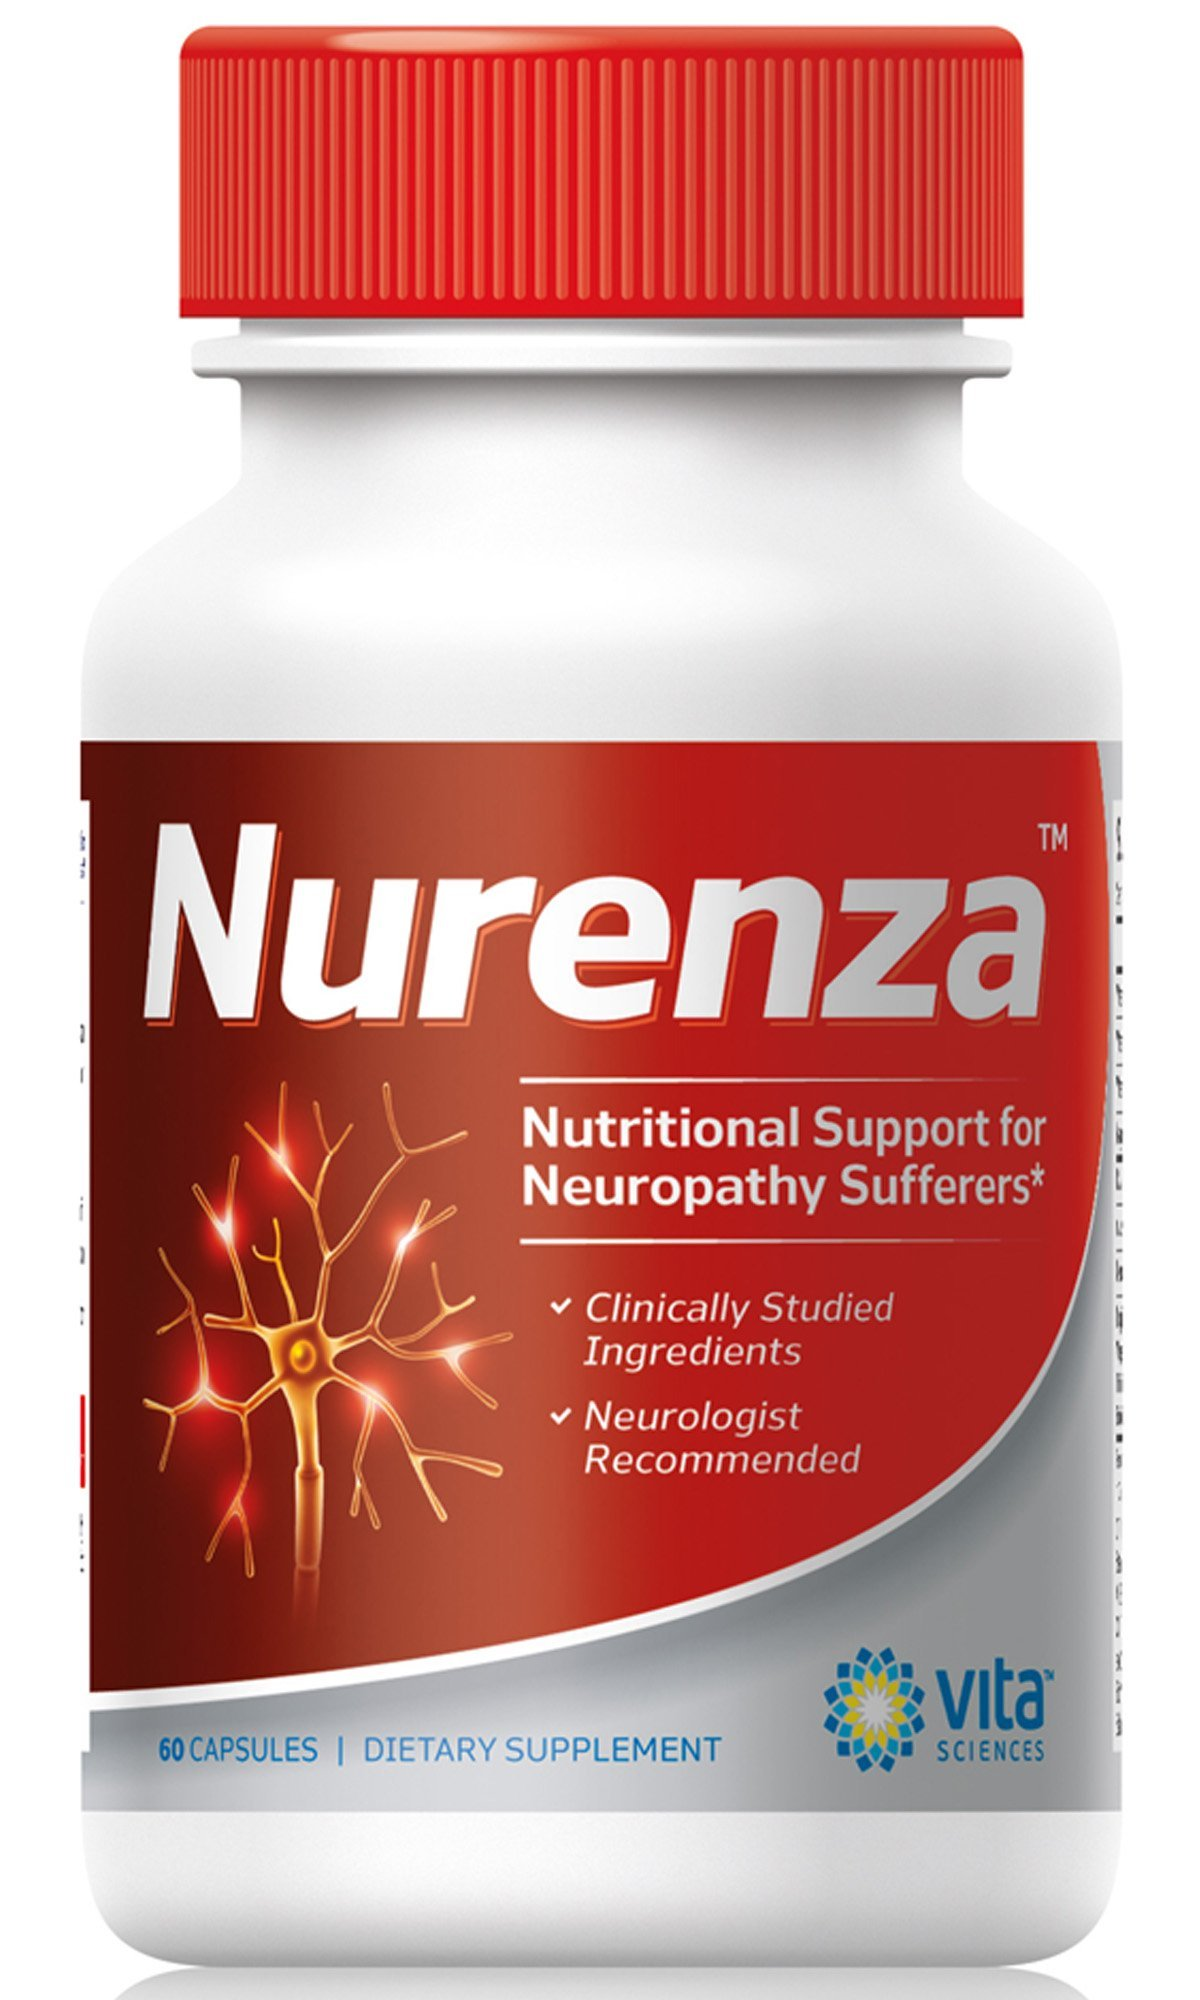 Neuropathy Supplement Nerve Pain Relief Natural R-ALA Form 10x Strength, NOT Synthetic Alpha Lipoic Acid | Feet, Hands, Legs, Toes Renew Repair Vitamins | Nurenza is for Everyone Incl. Diabetics